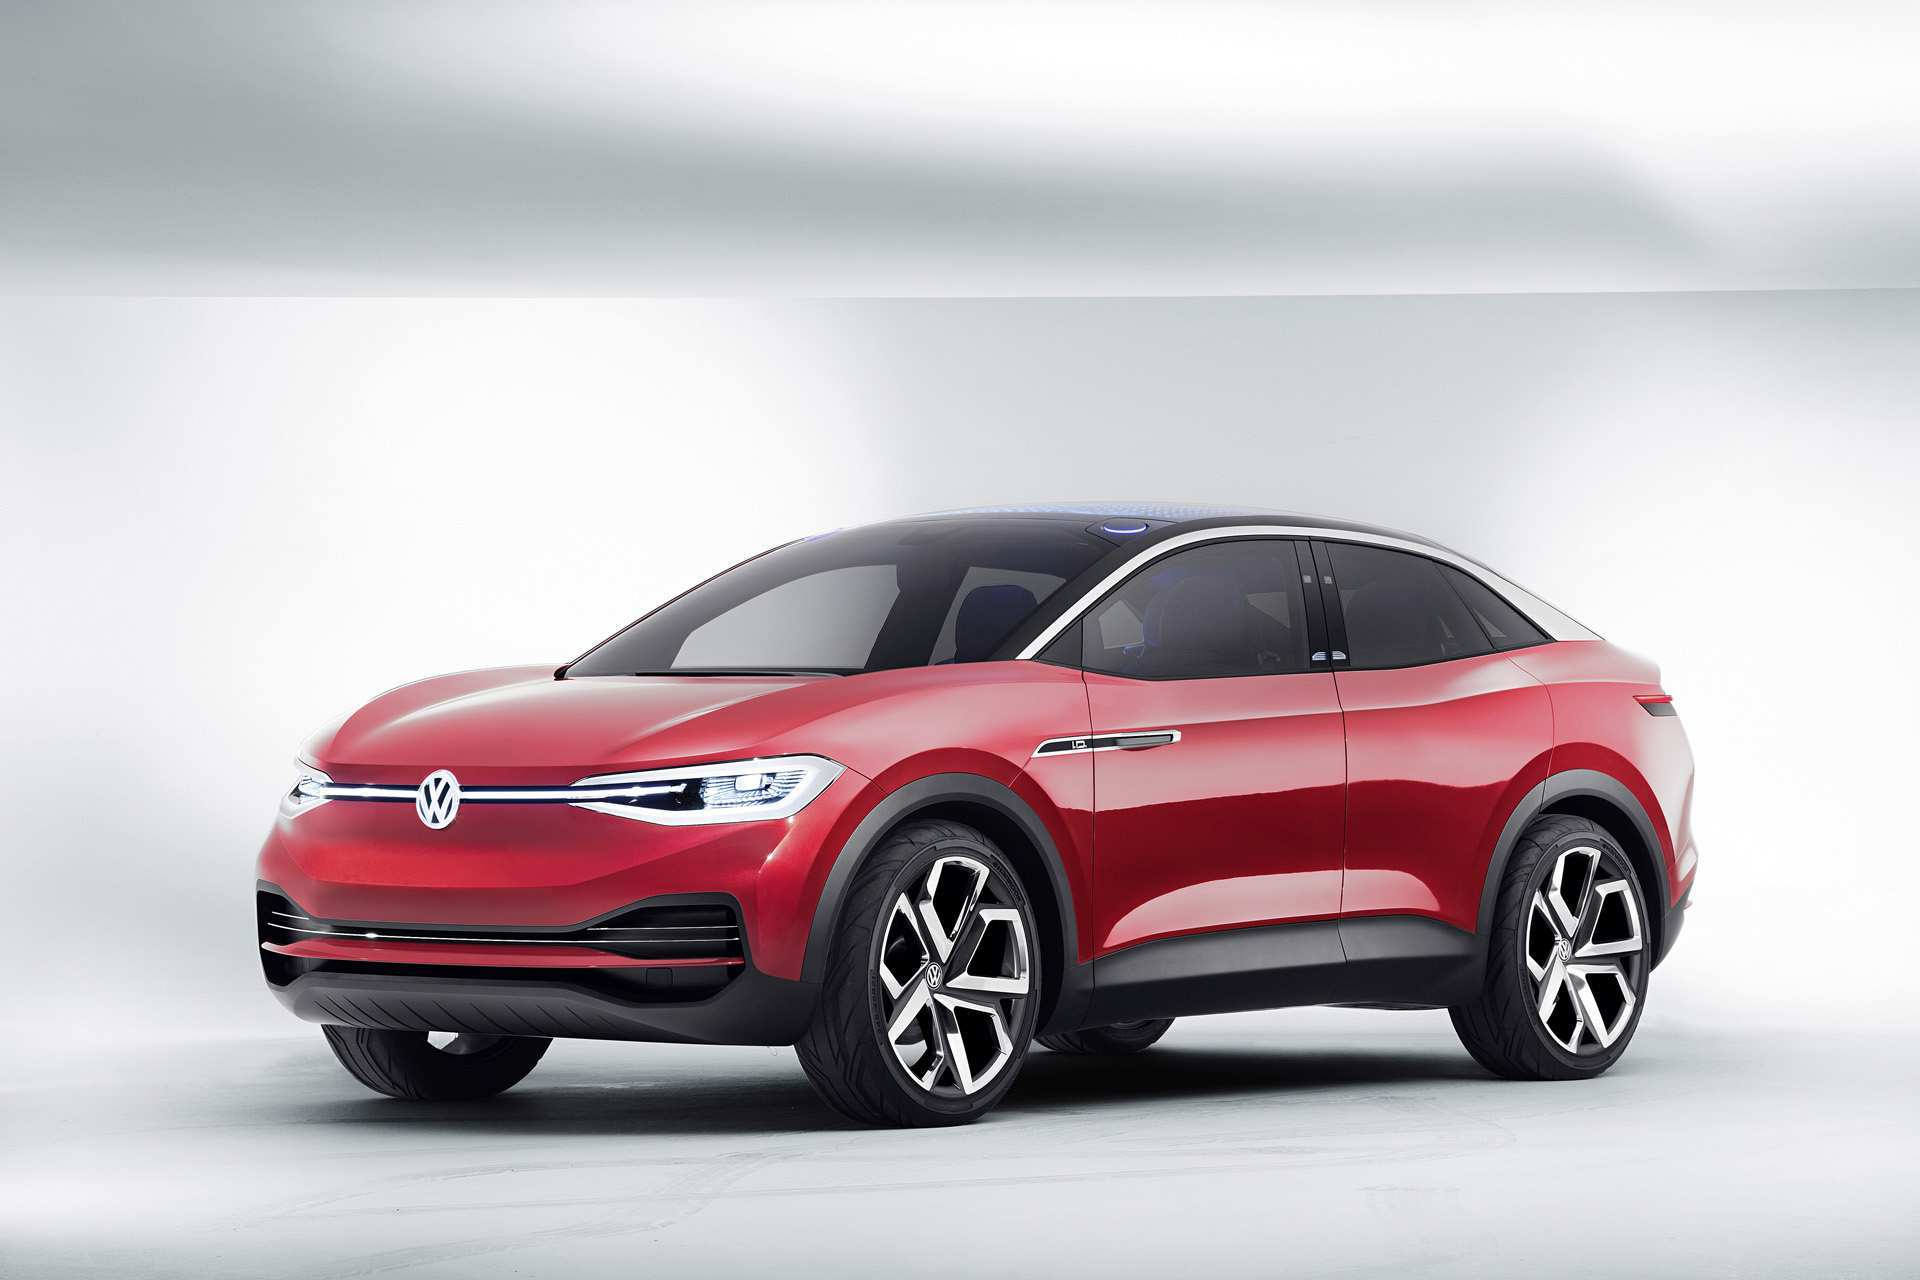 95 The Volkswagen New Suv 2020 Style